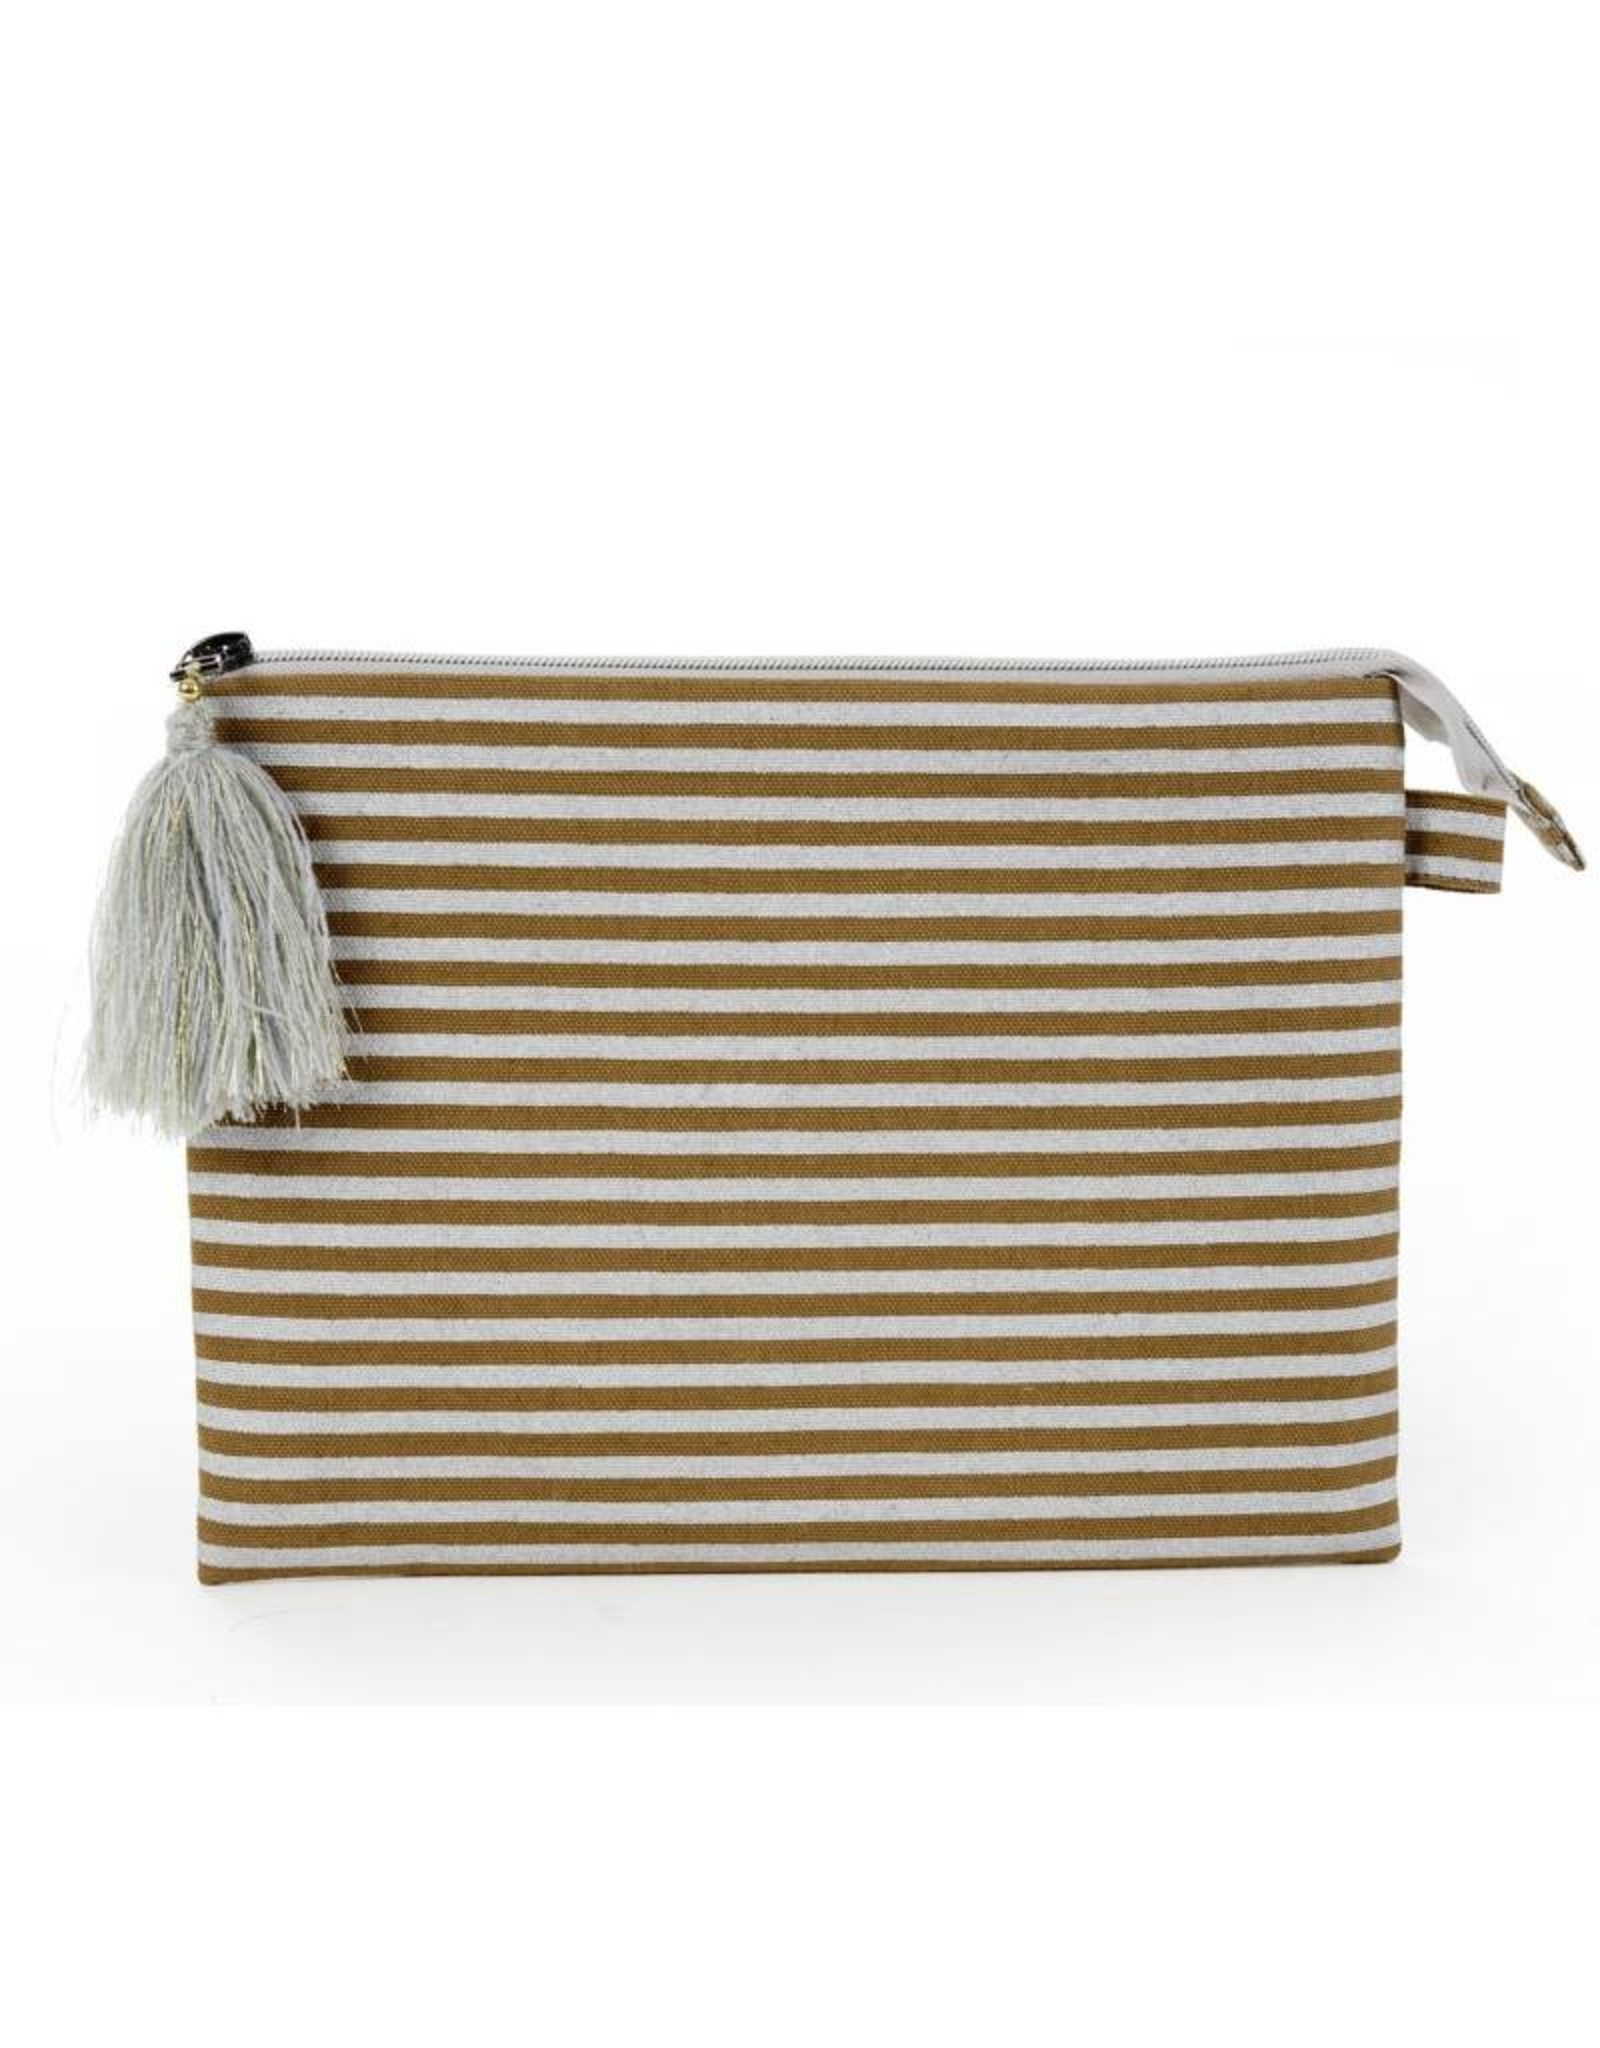 Indaba Silver Stripe Pouch - Large